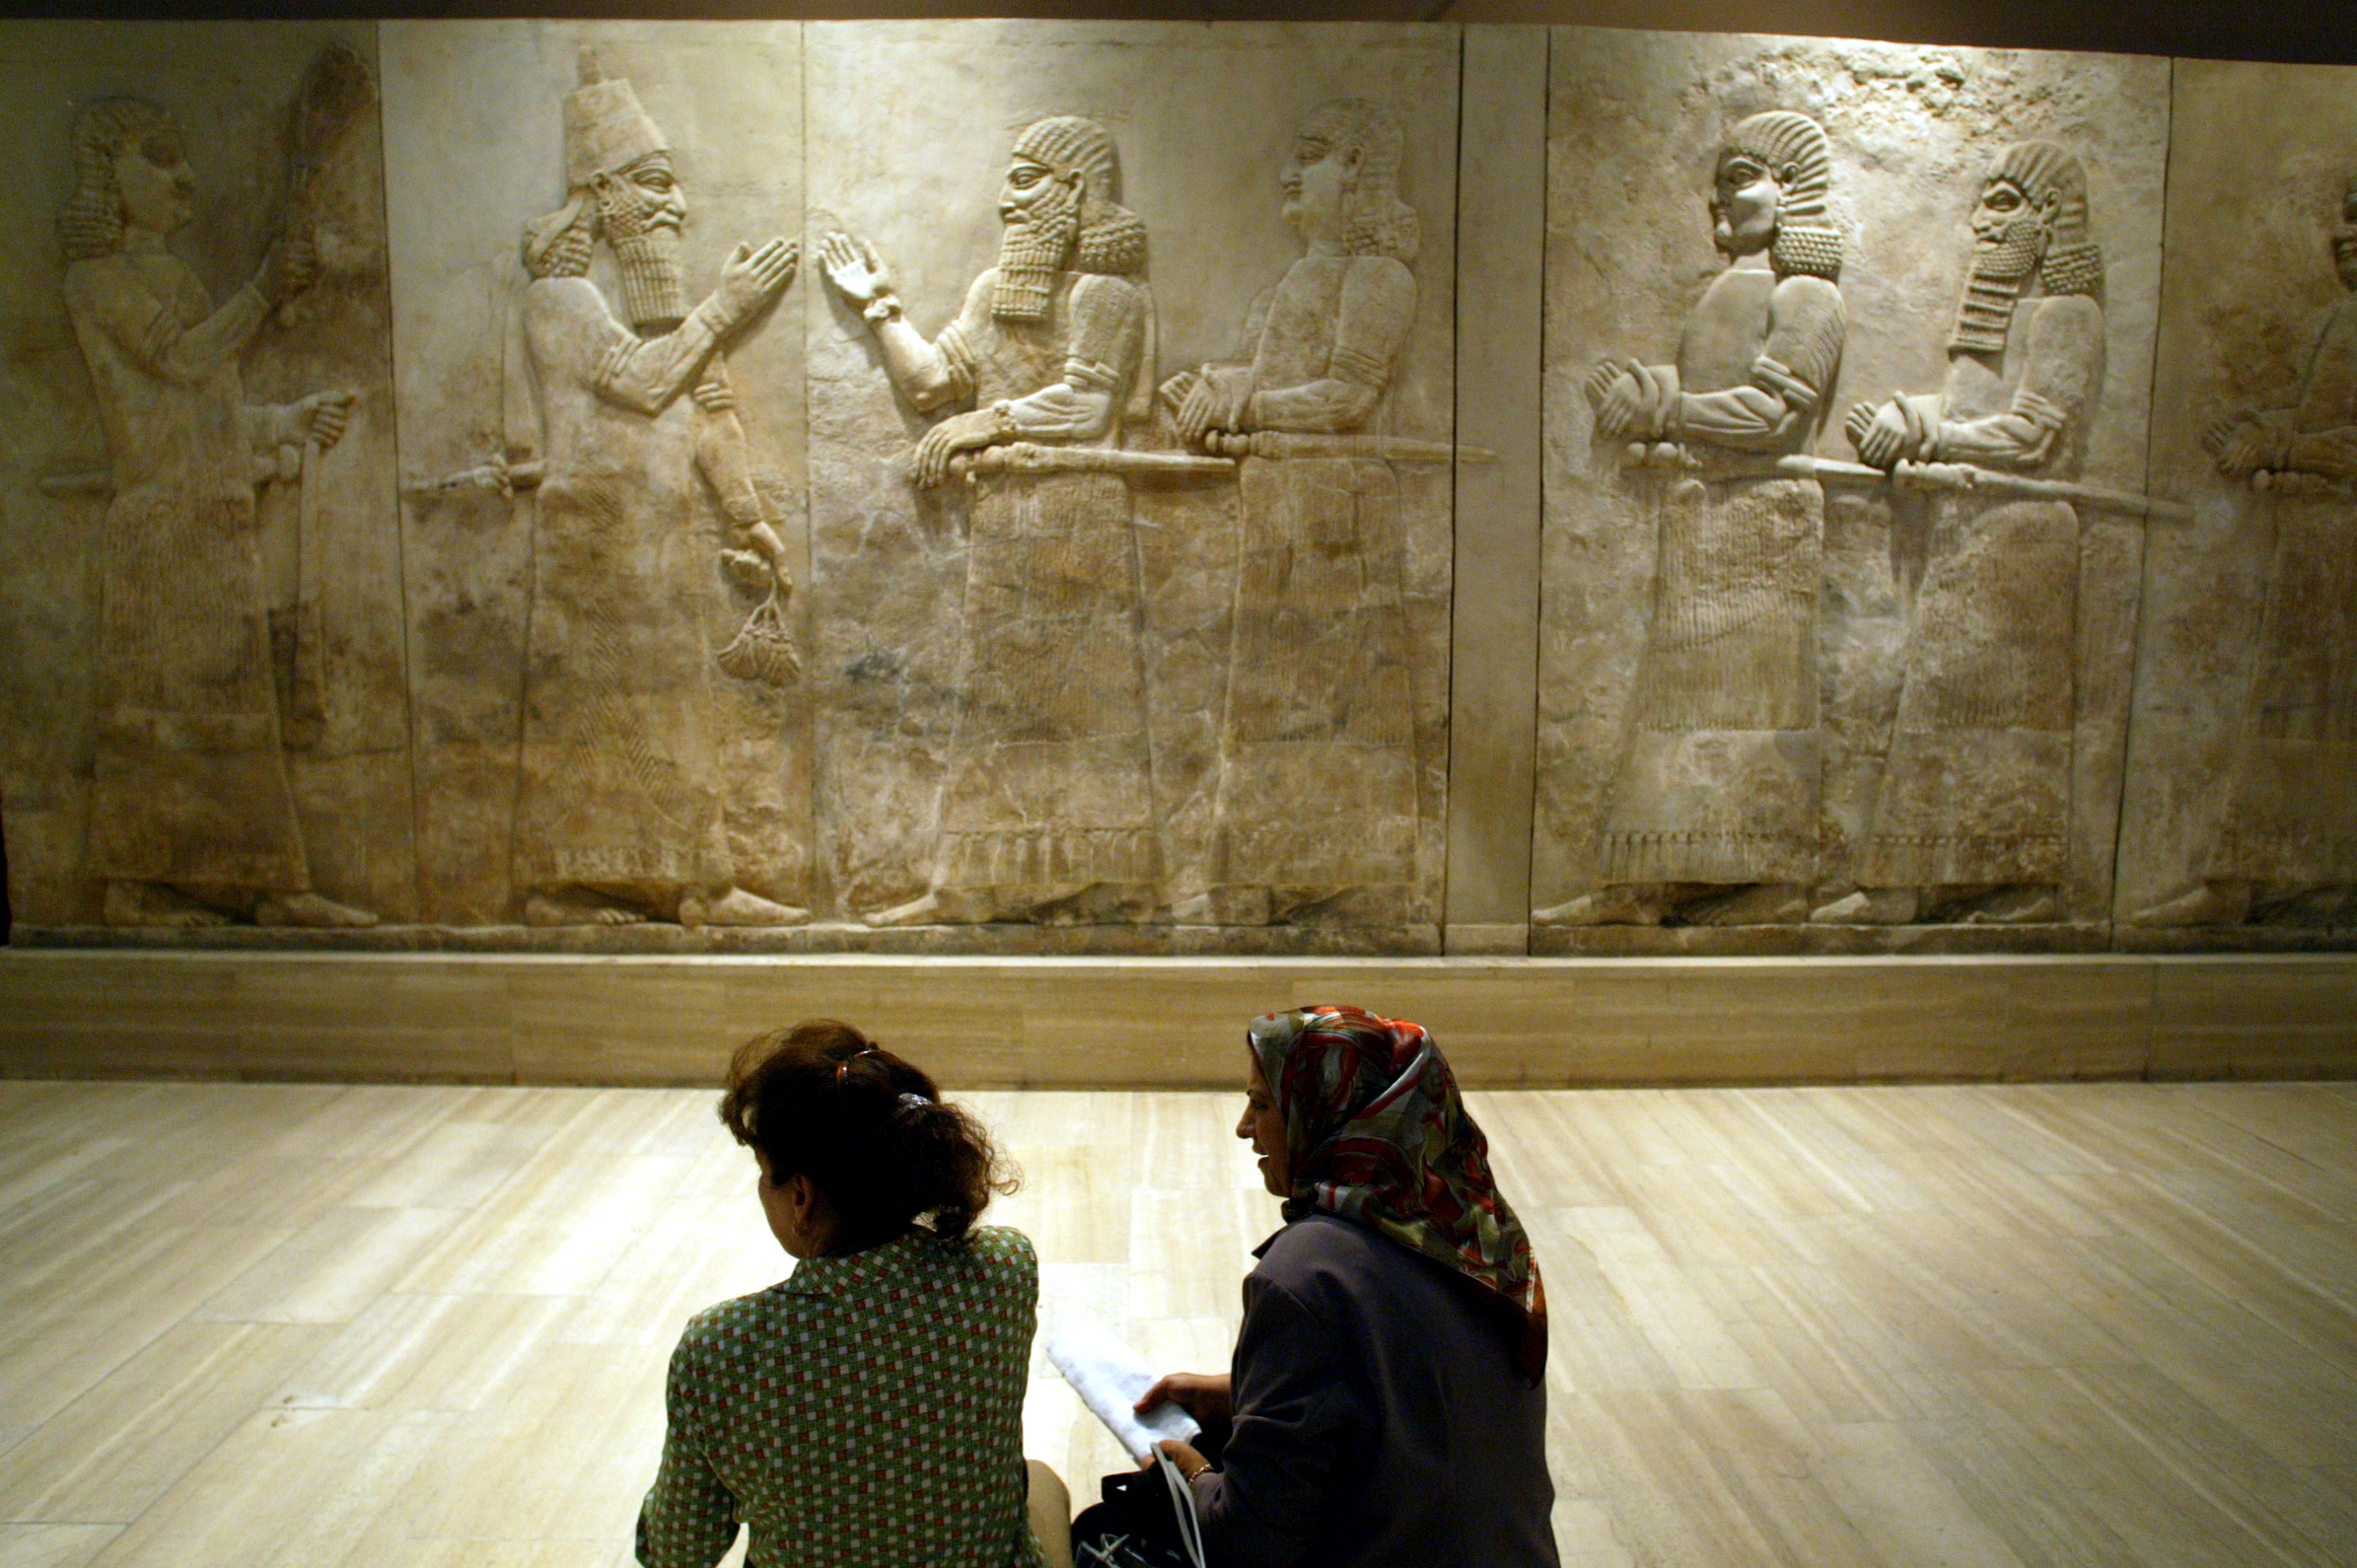 Two Iraqi women talk in front of Assyrian mural sculptures July 3, 2003 as the Baghdad museum briefly re-opened to display ancient Nimrud treasures. One of the most significant archaeological finds of the 20th century, the Nimrud treasures were destroyed by Islamic State militants, the Iraqi ministry announced Thursday. Photo by Radu Sigheti/Reuters